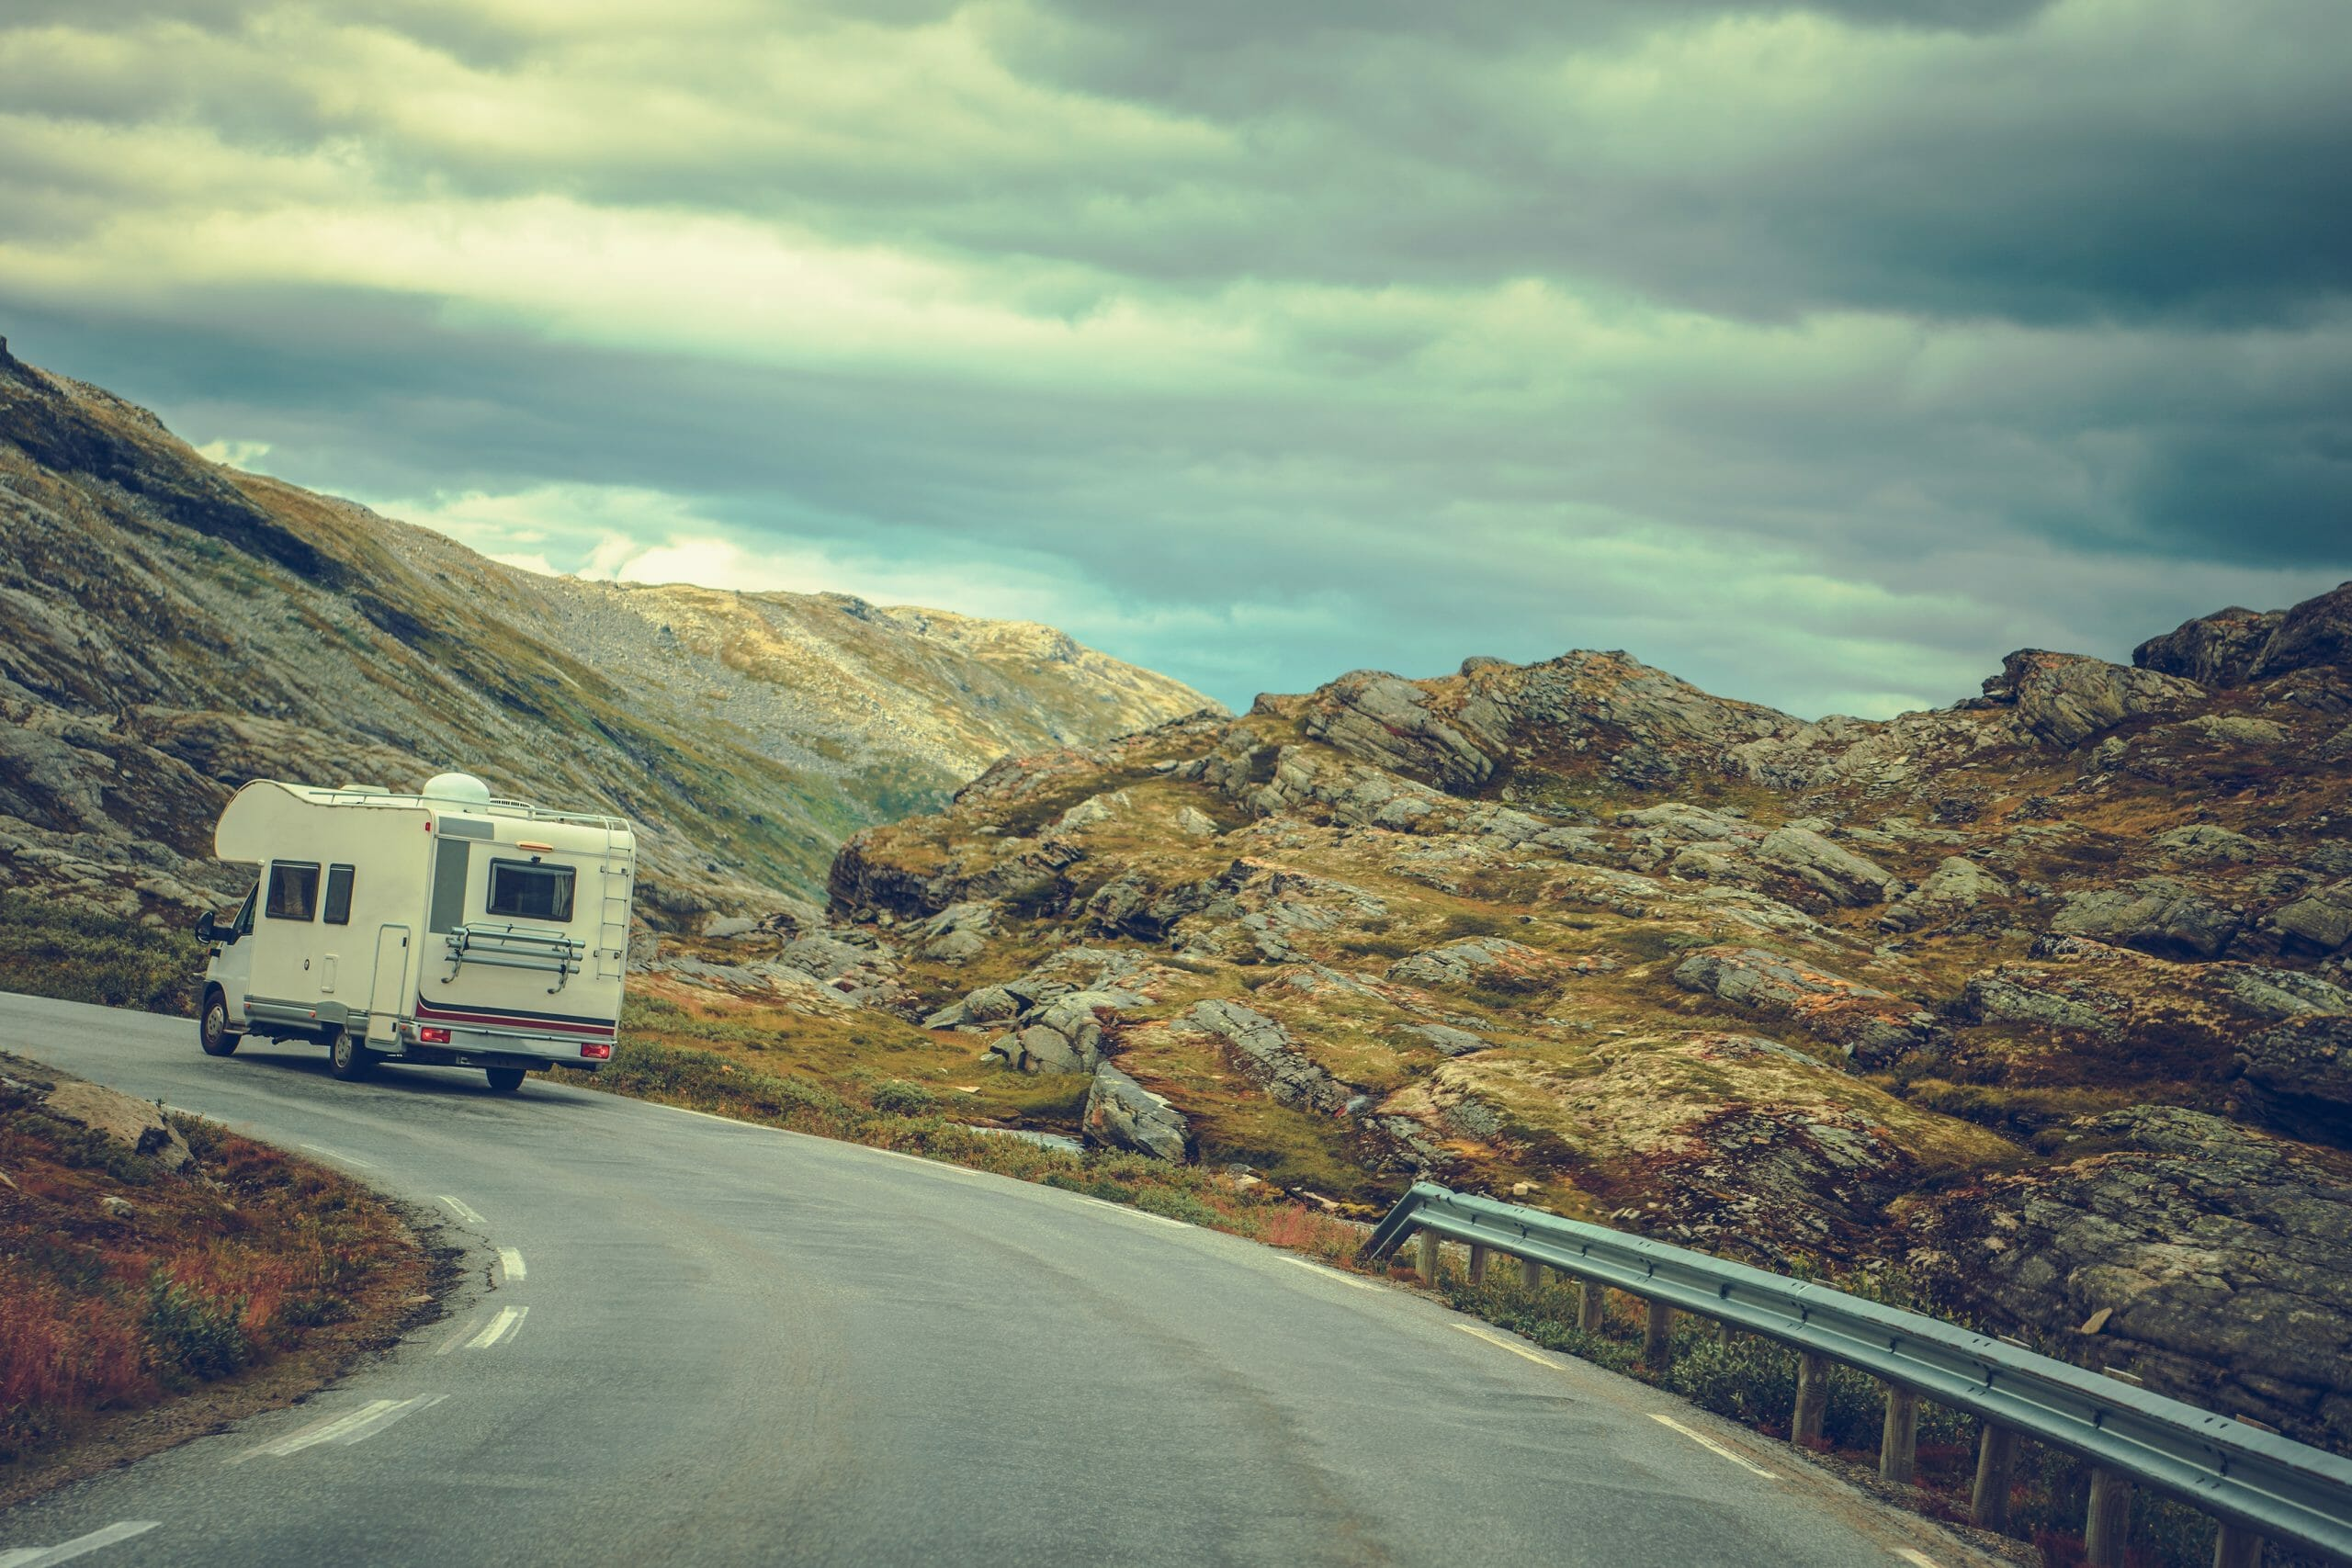 Driving an RV in the Windy Mountains